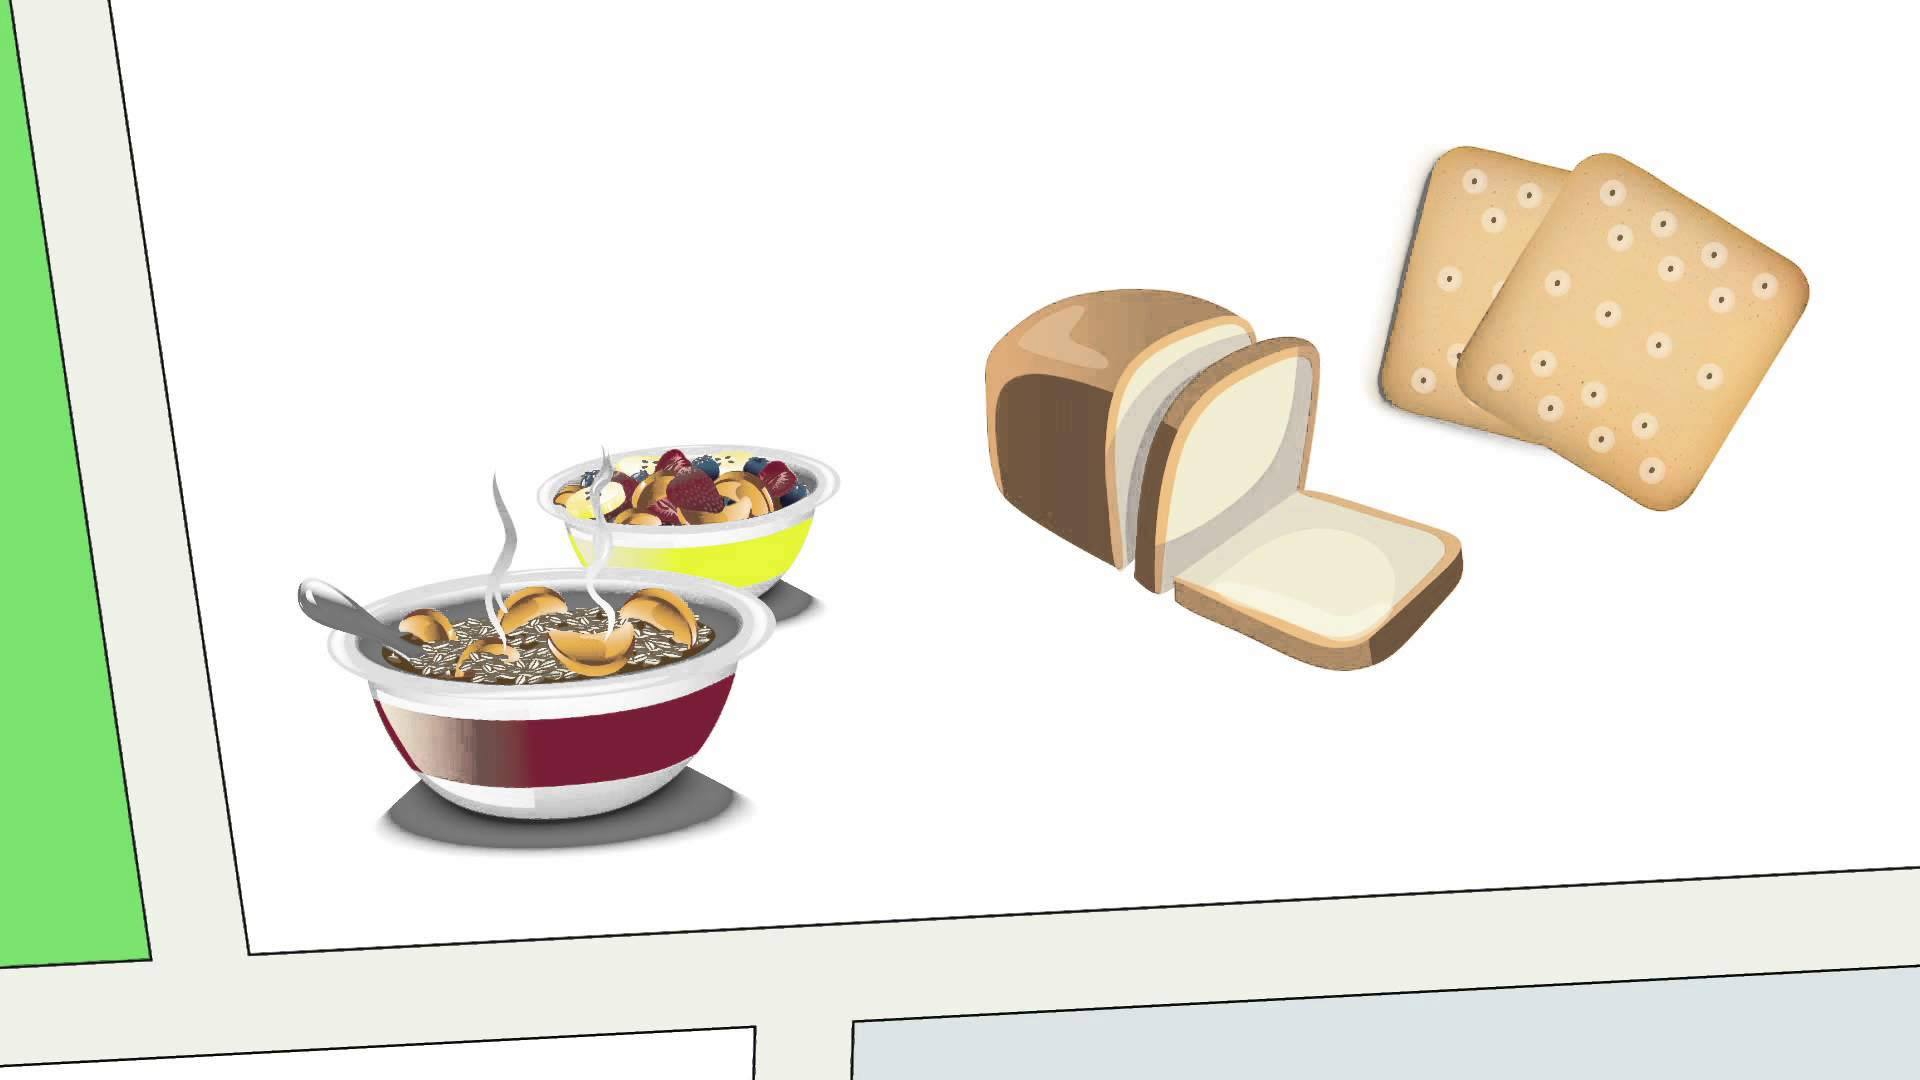 1920x1080 3. What Foods Have Carbohydrates